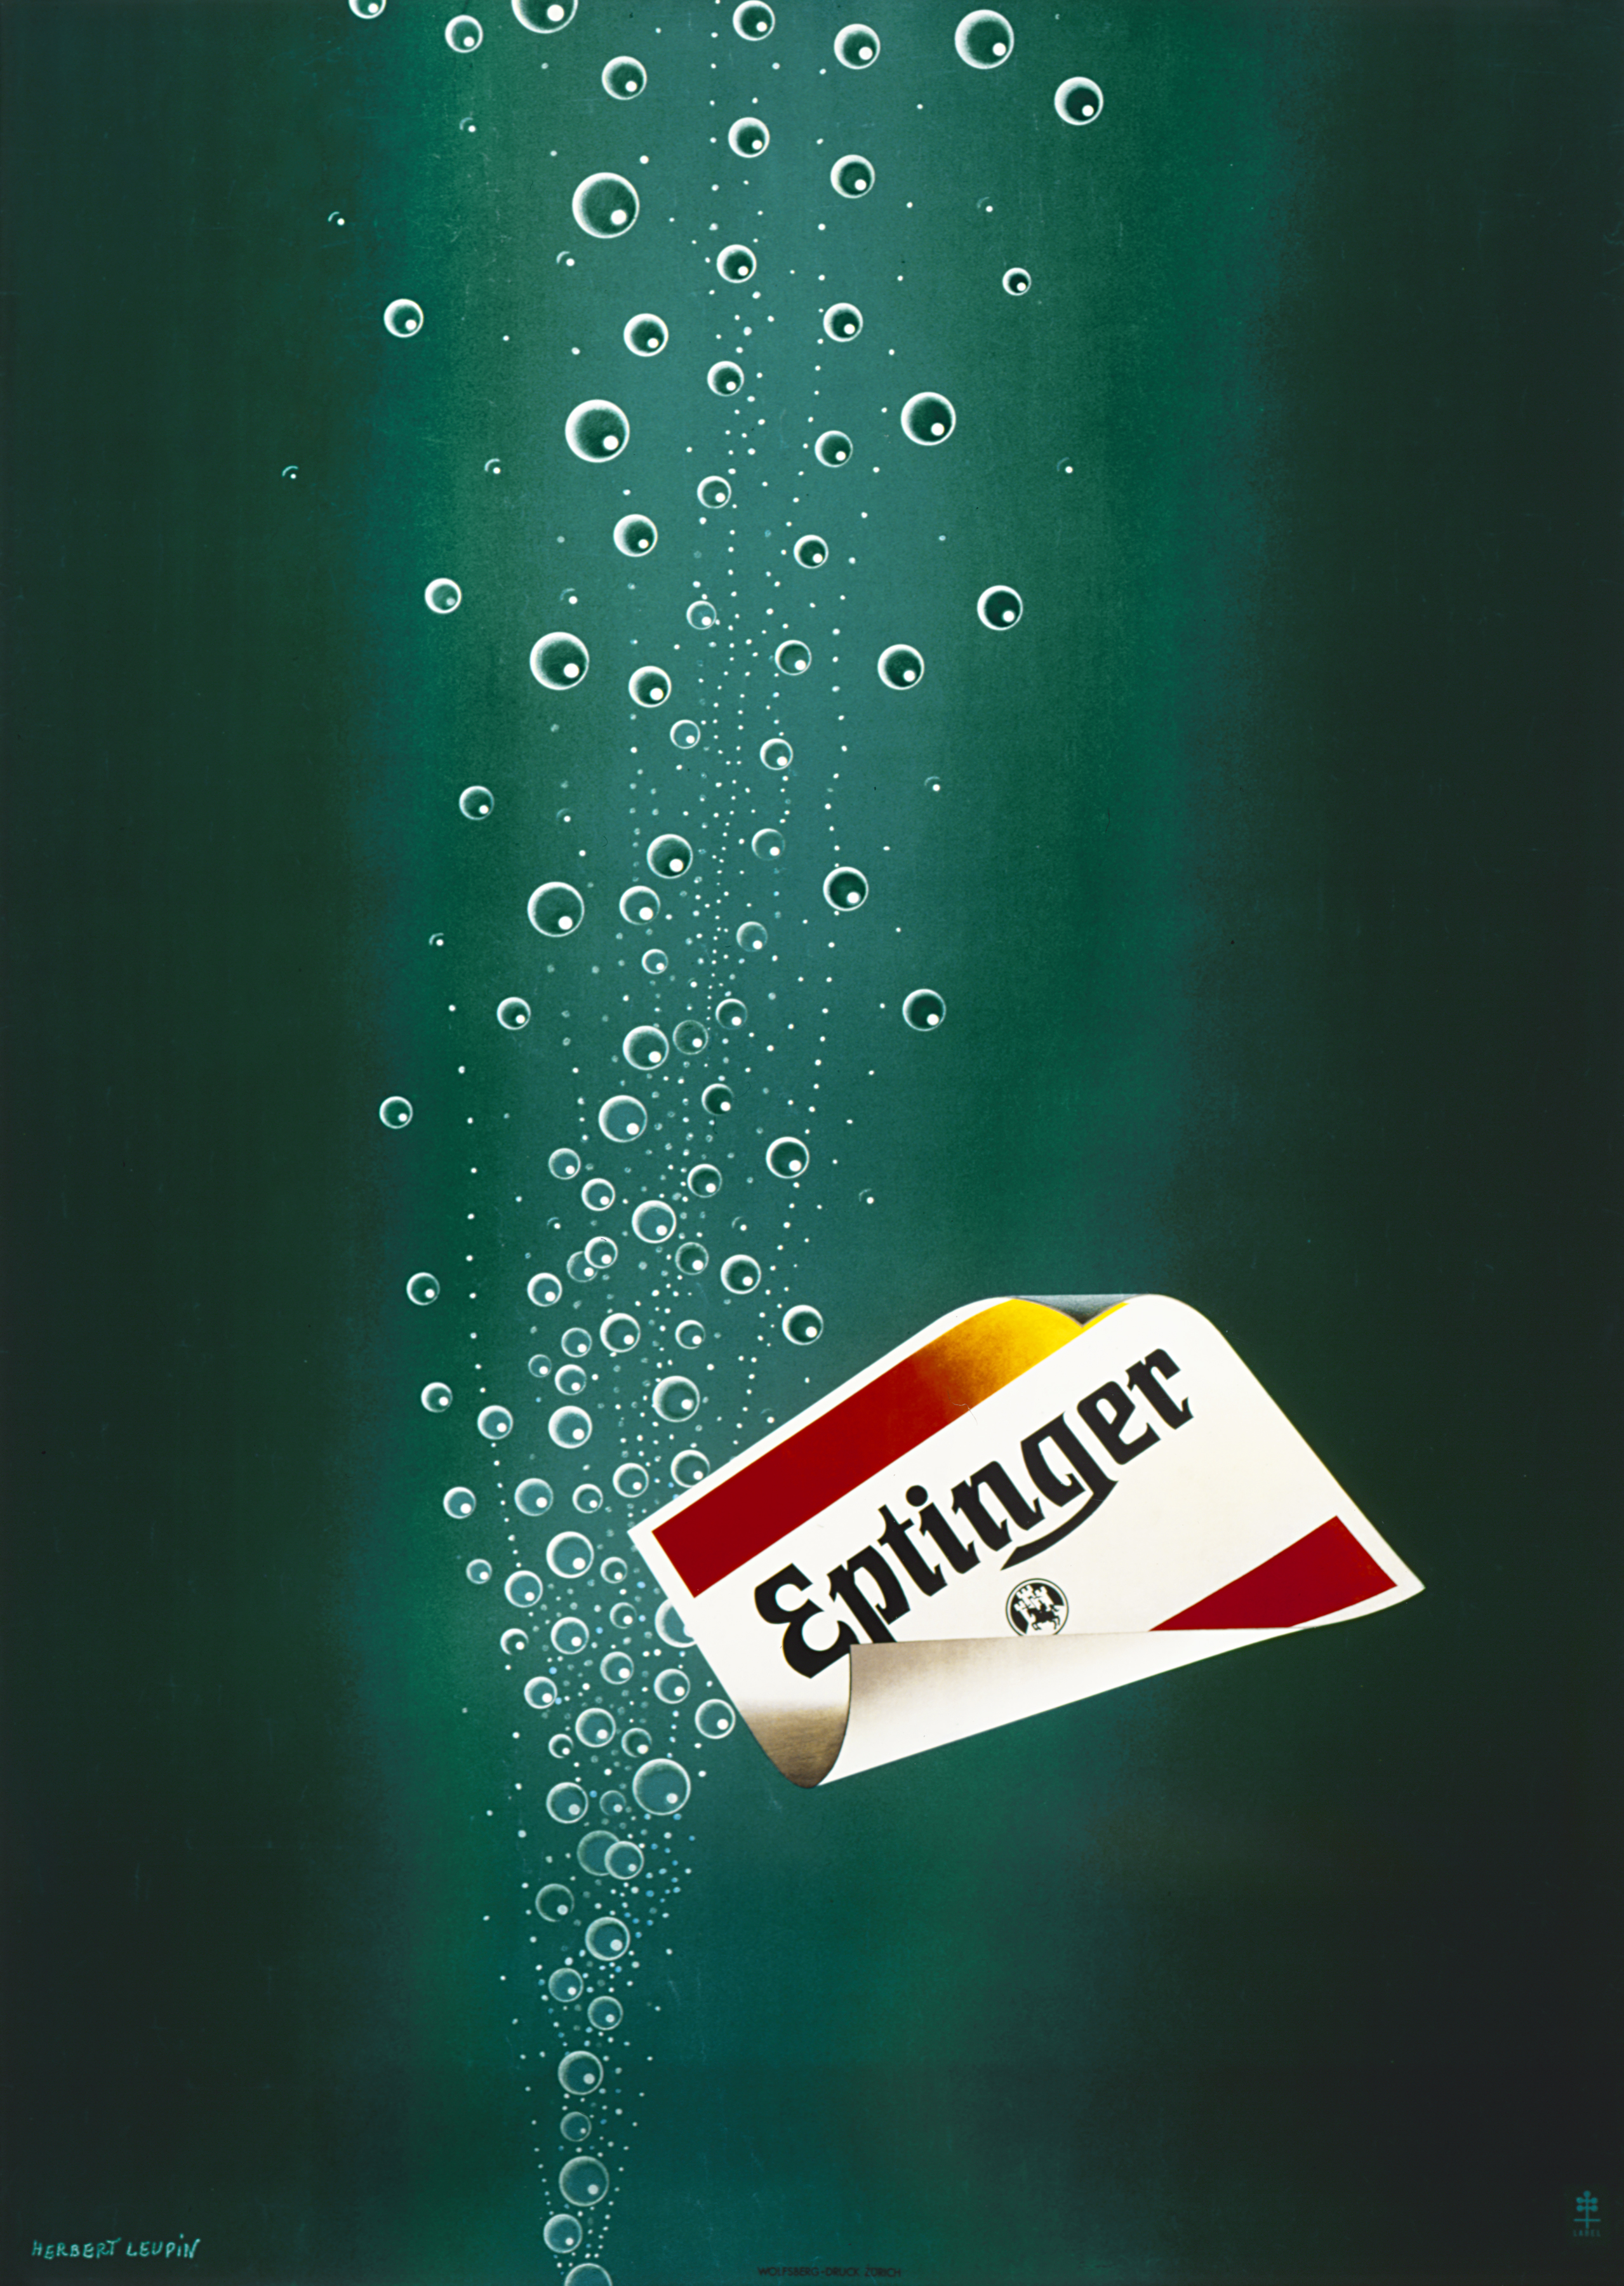 Bubbles and Eptinger label rise from water